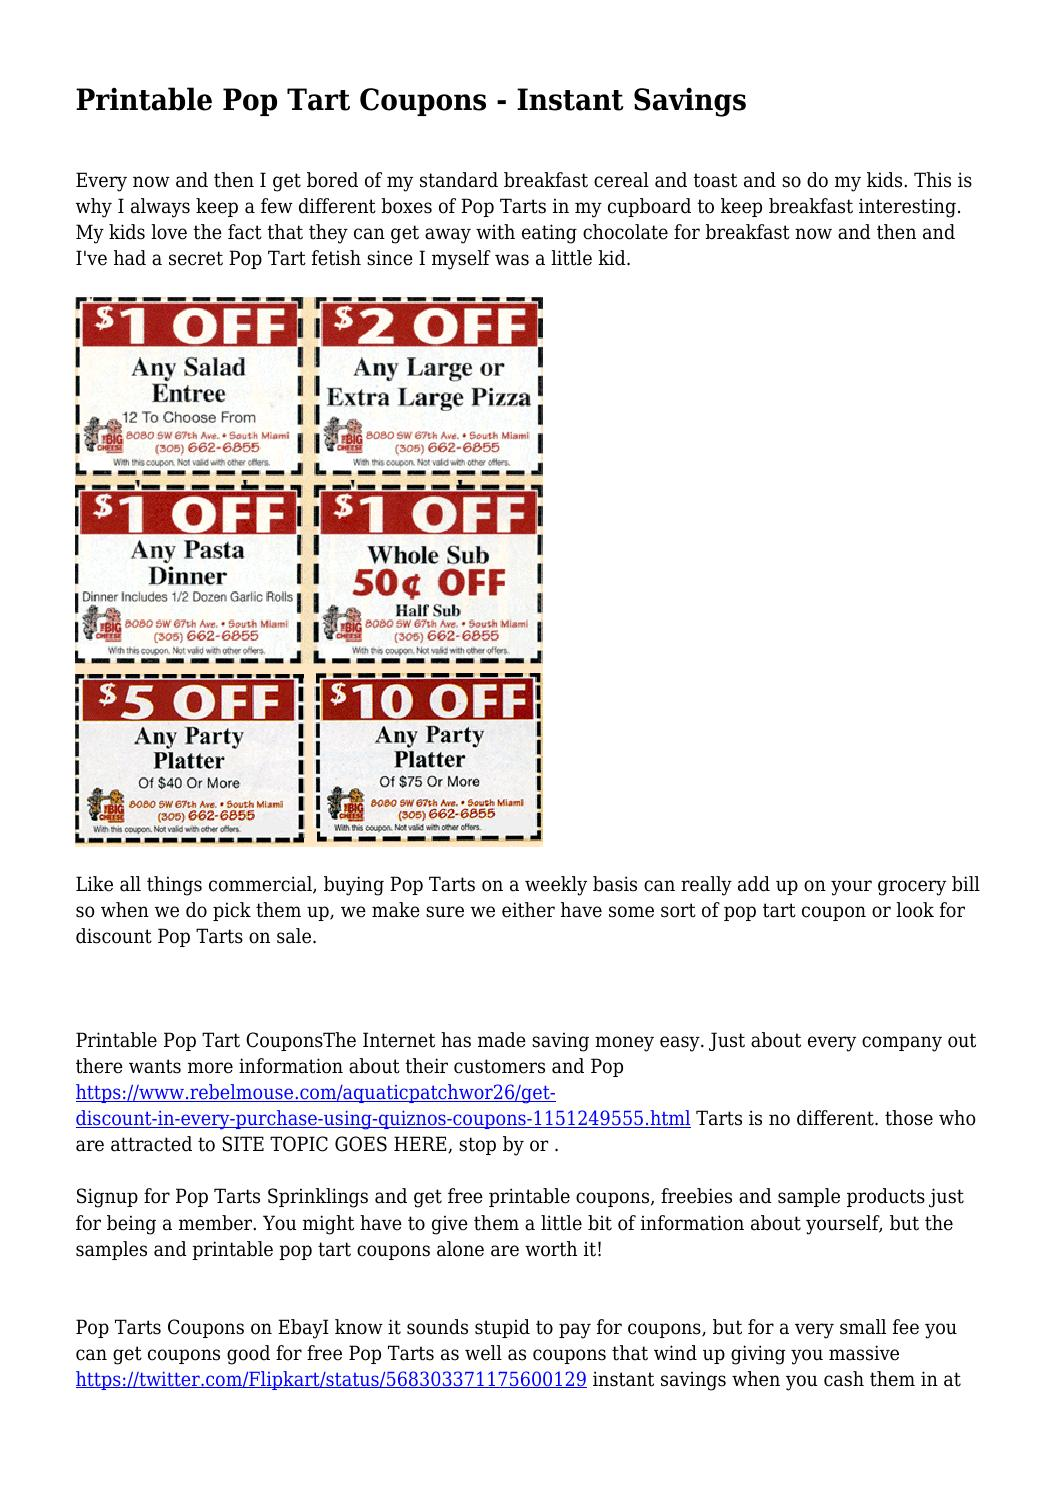 photo about Pop Tarts Coupon Printable identify Printable Pop Tart Discount coupons - Immediate Discounts by means of